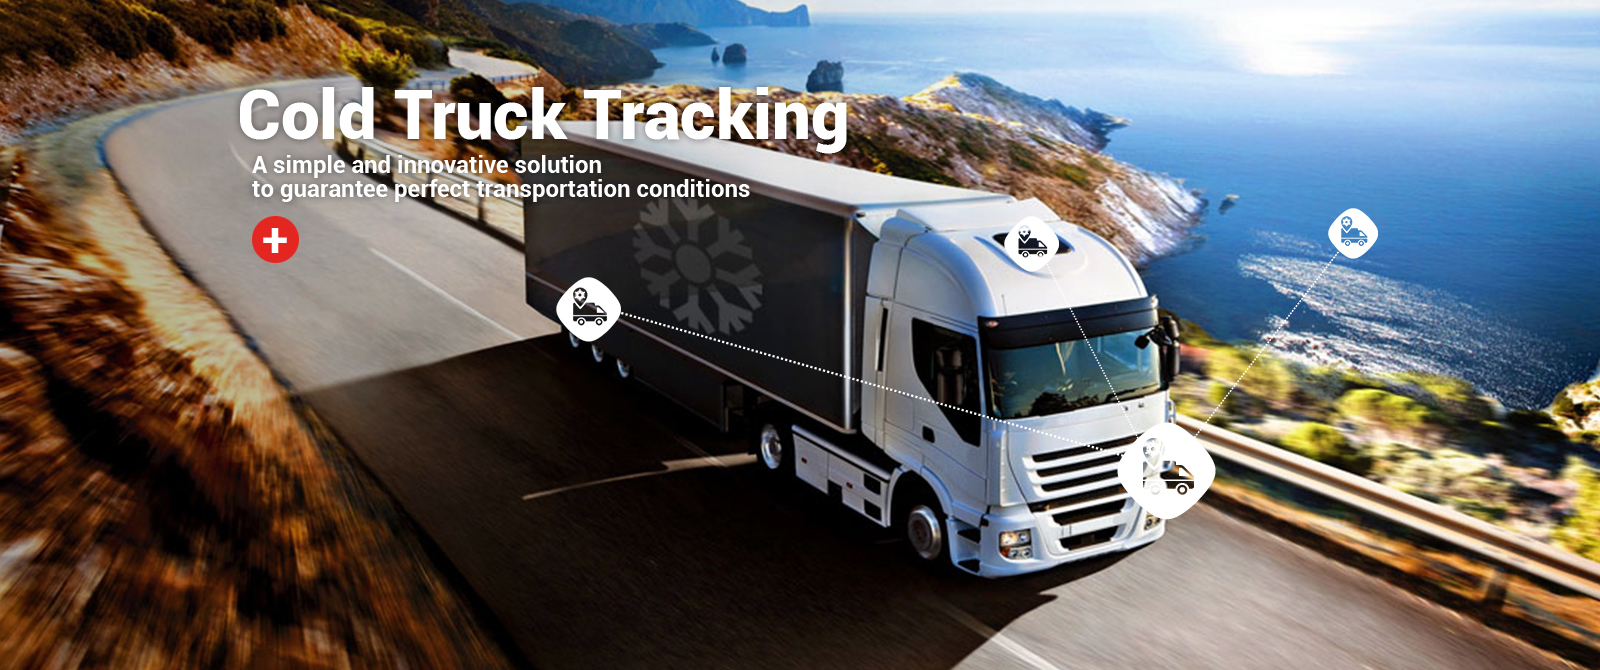 youcold_truck-trucking